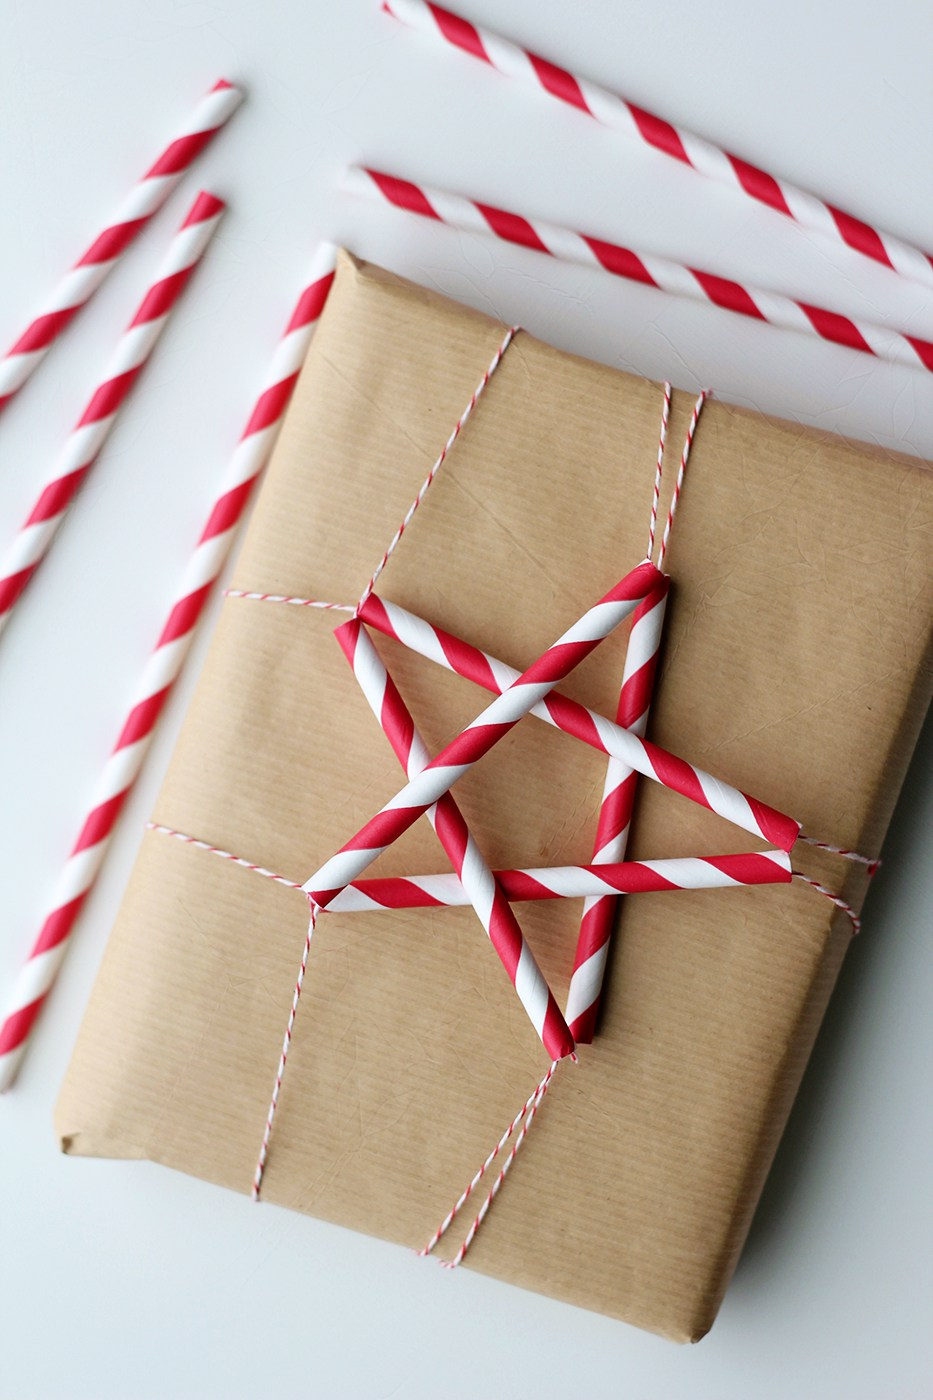 Find gift wrap for kids or adults with wrapping paper for any occasion or holiday with high-quality Hallmark wrapping paper for birthday, weddings and more.